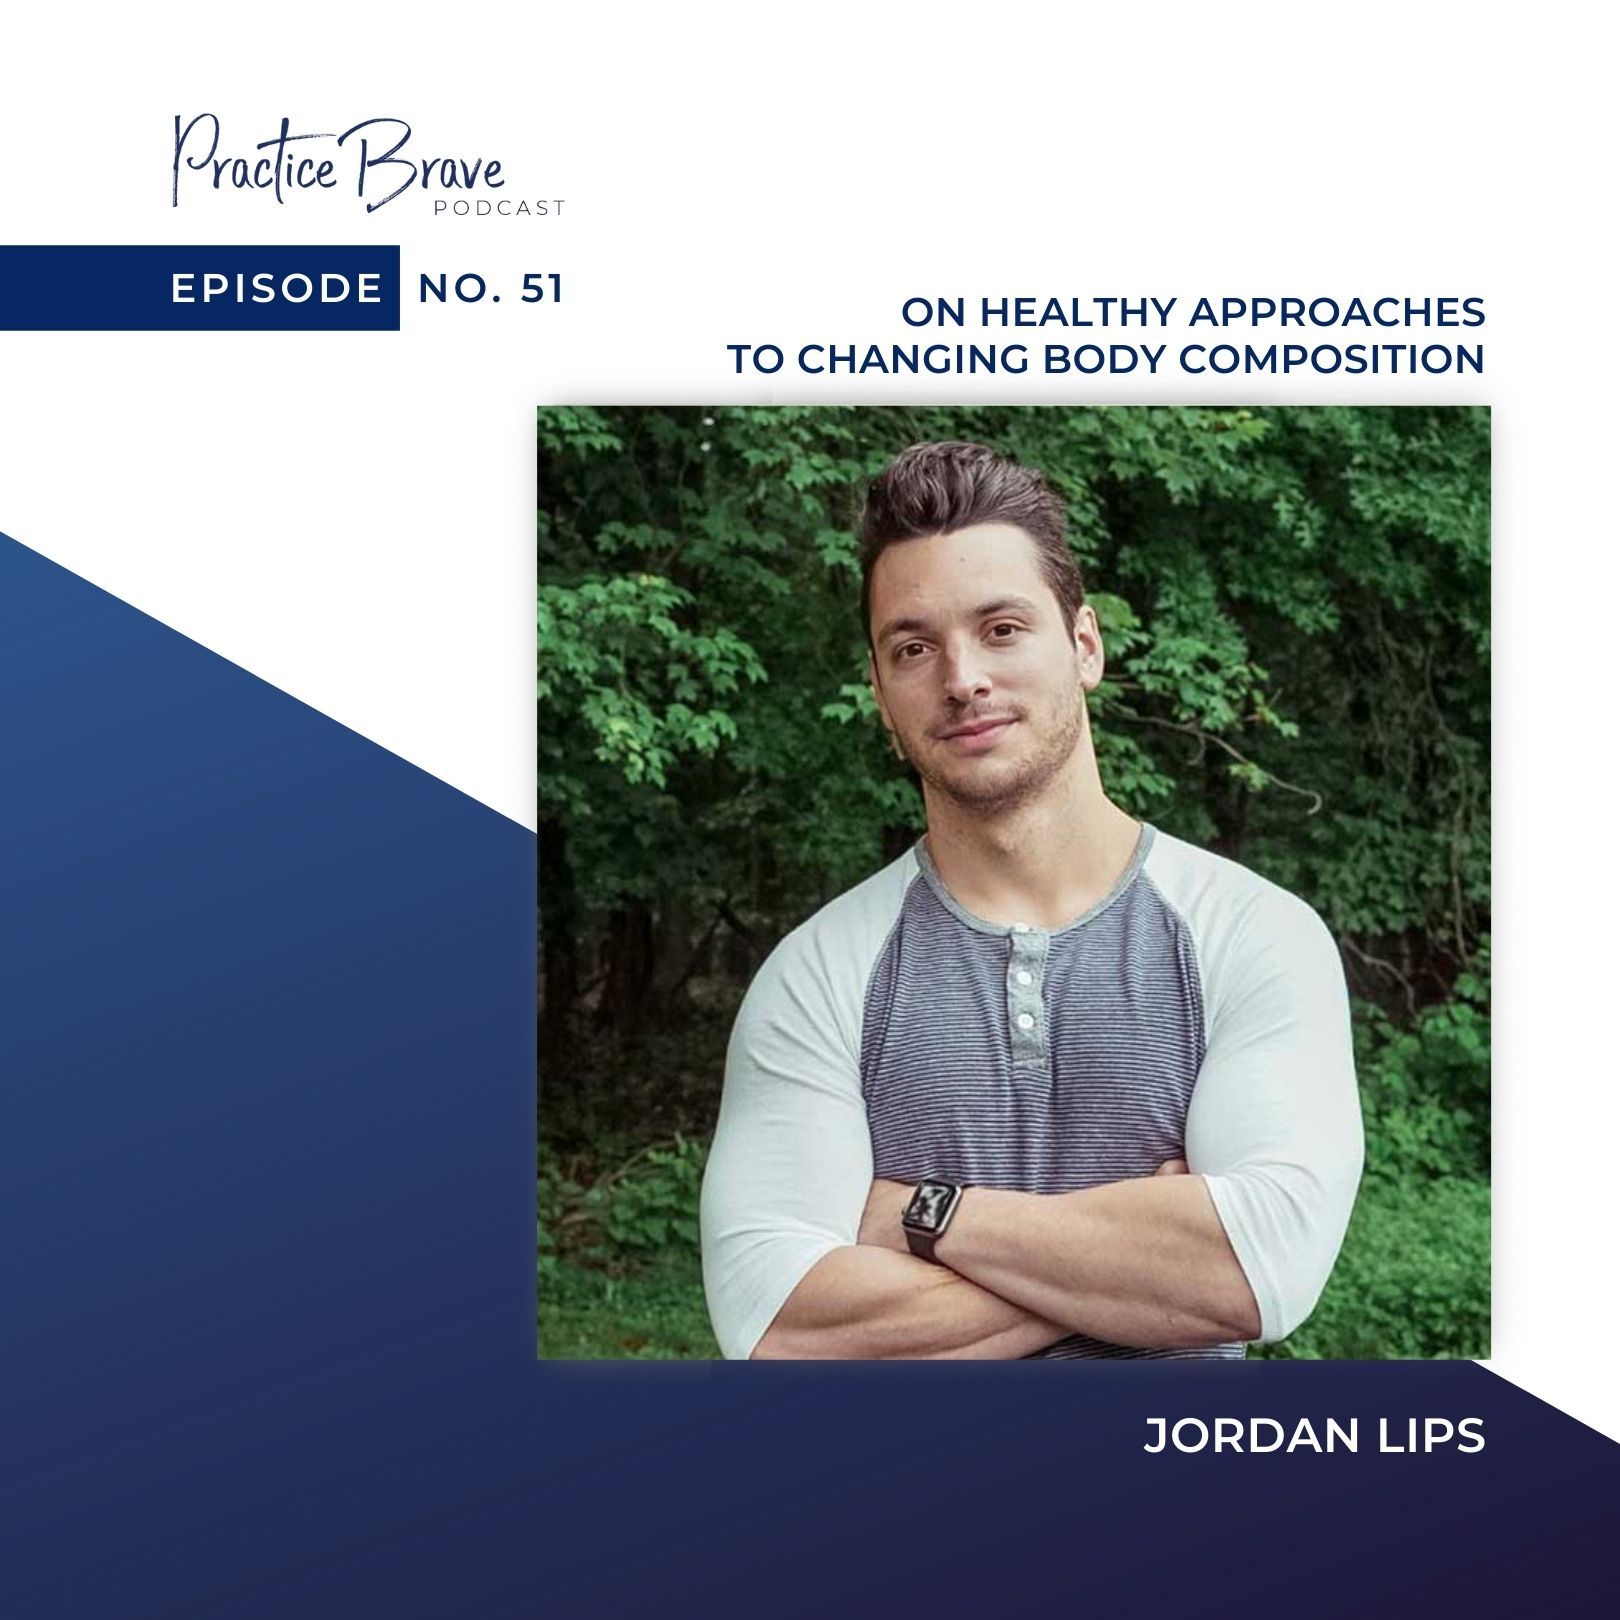 Episode 51: Jordan Lips On Healthy Approaches To Changing Body Composition